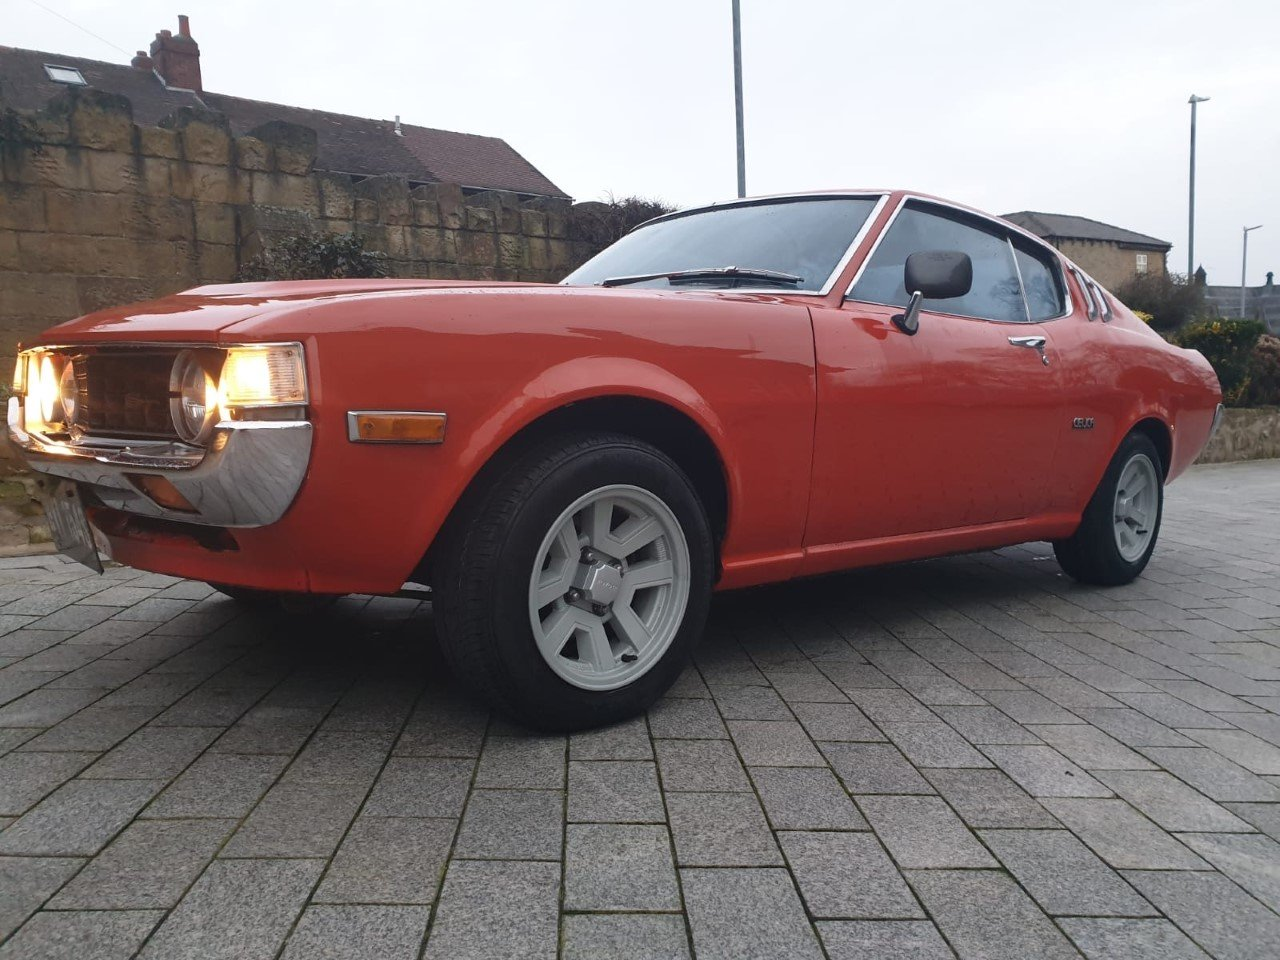 1978 Toyota celica ra28 1 owner from new uk car SOLD (picture 2 of 6)